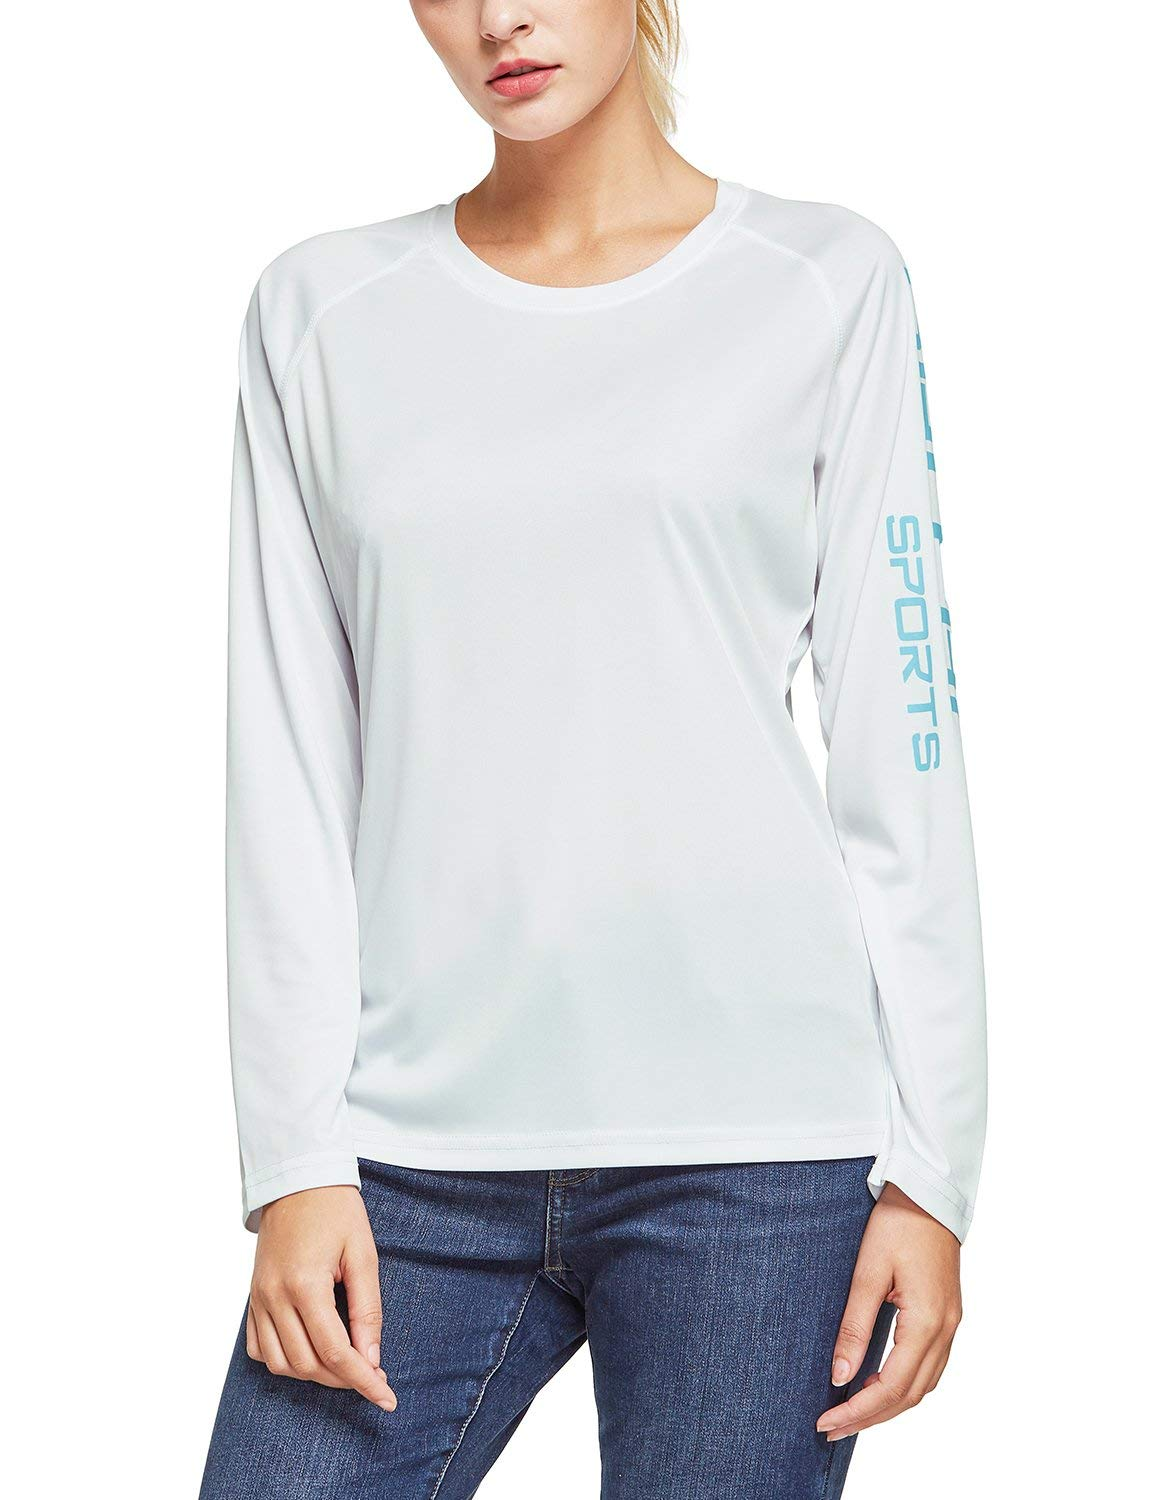 BALEAF Women's UPF 50+ Sun Protection T-Shirt Long Sleeve Outdoor Performance White Size S by BALEAF